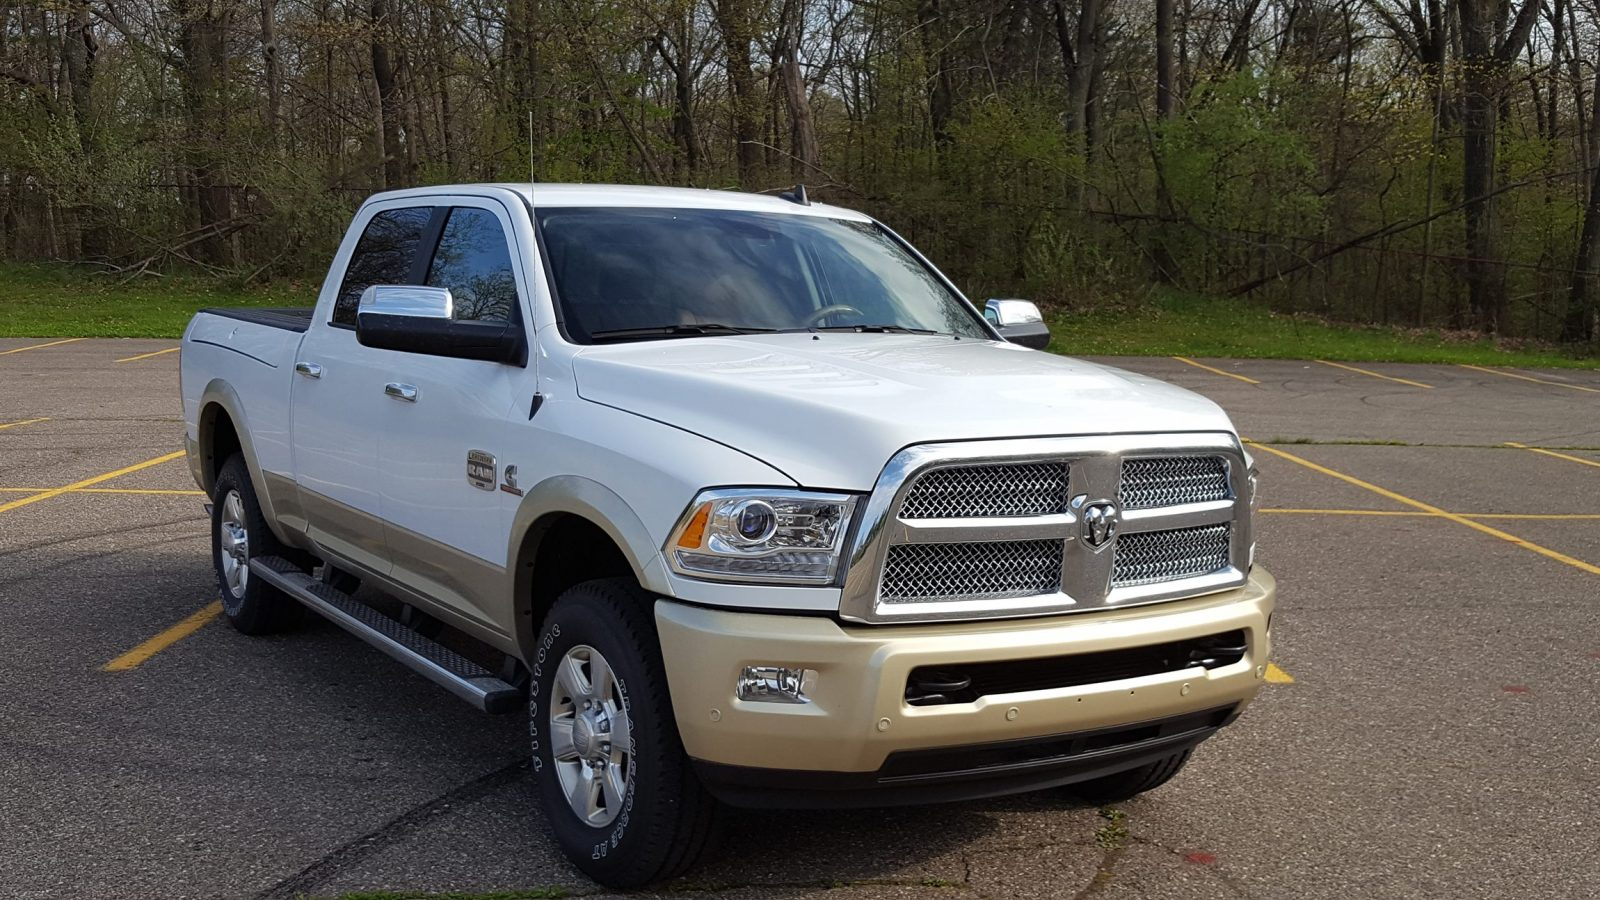 Dodge Ram Longhorn 2015 >> Drive Review - 2016 RAM 2500 Laramie Longhorn 4x4 - By Carl Malek » Car-Revs-Daily.com